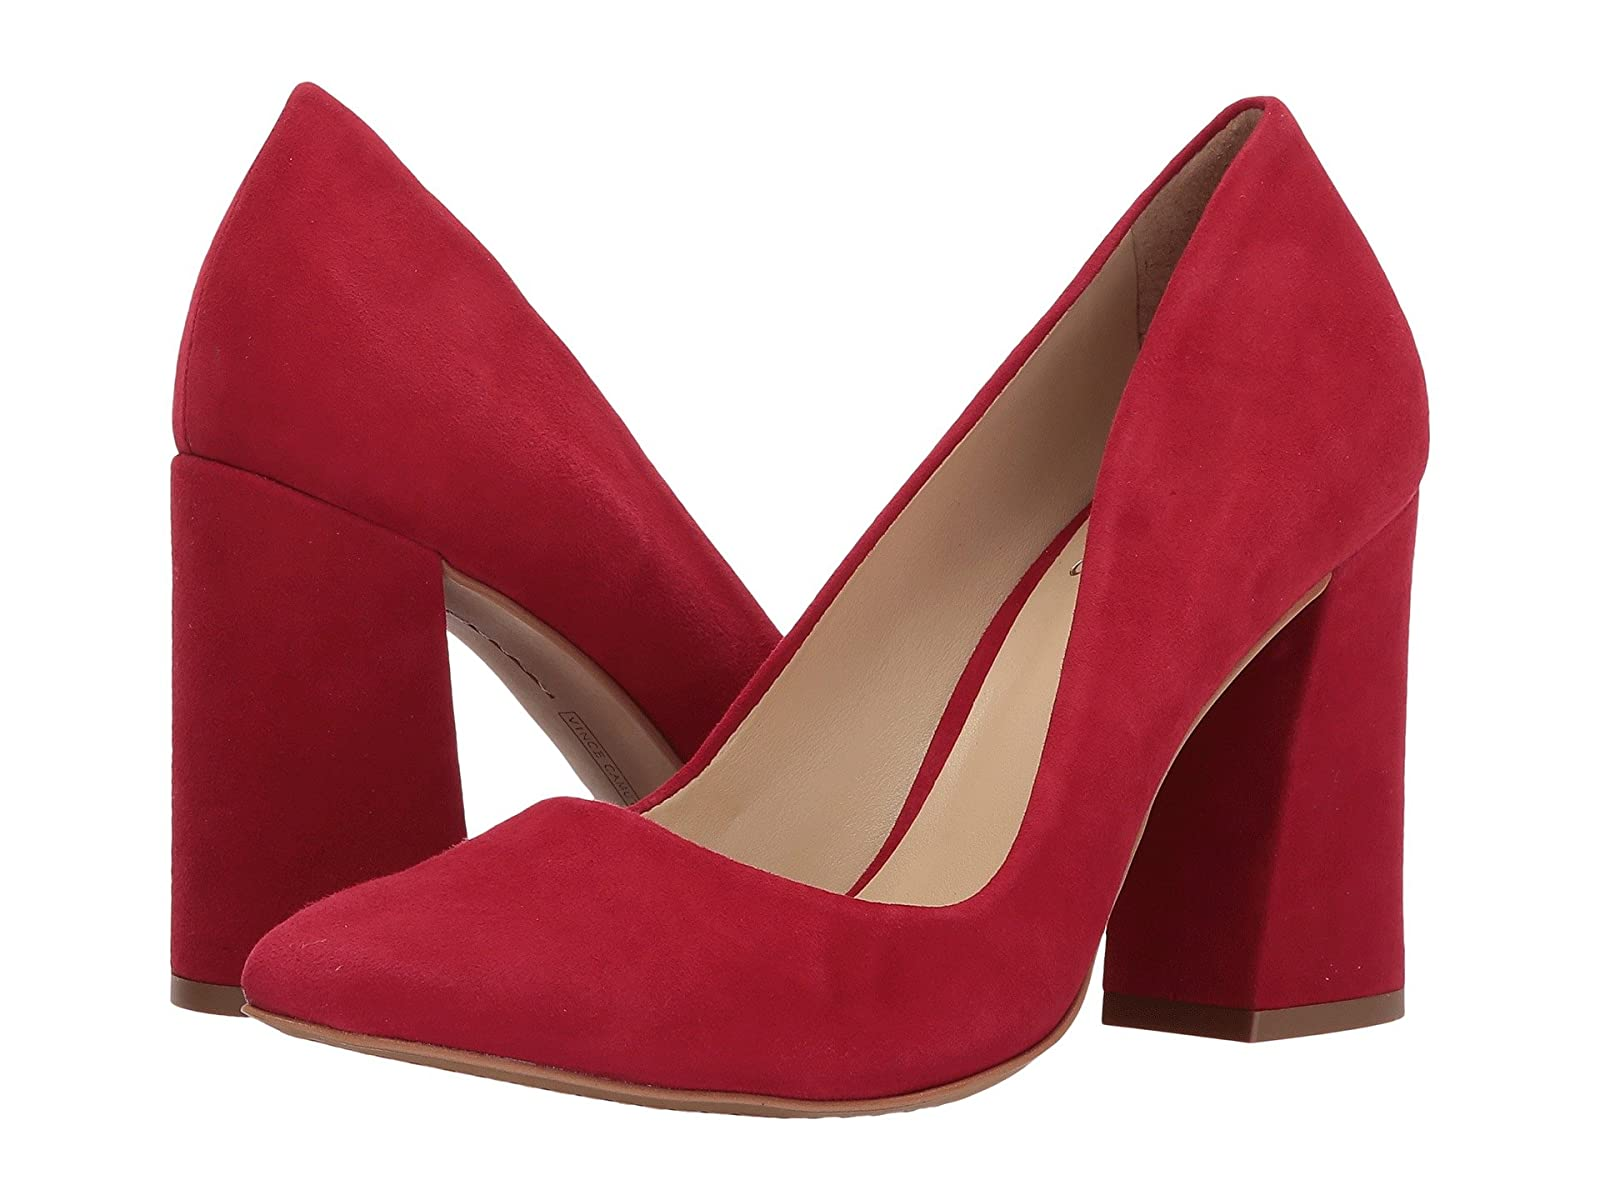 Vince Camuto TaliseCheap and distinctive eye-catching shoes